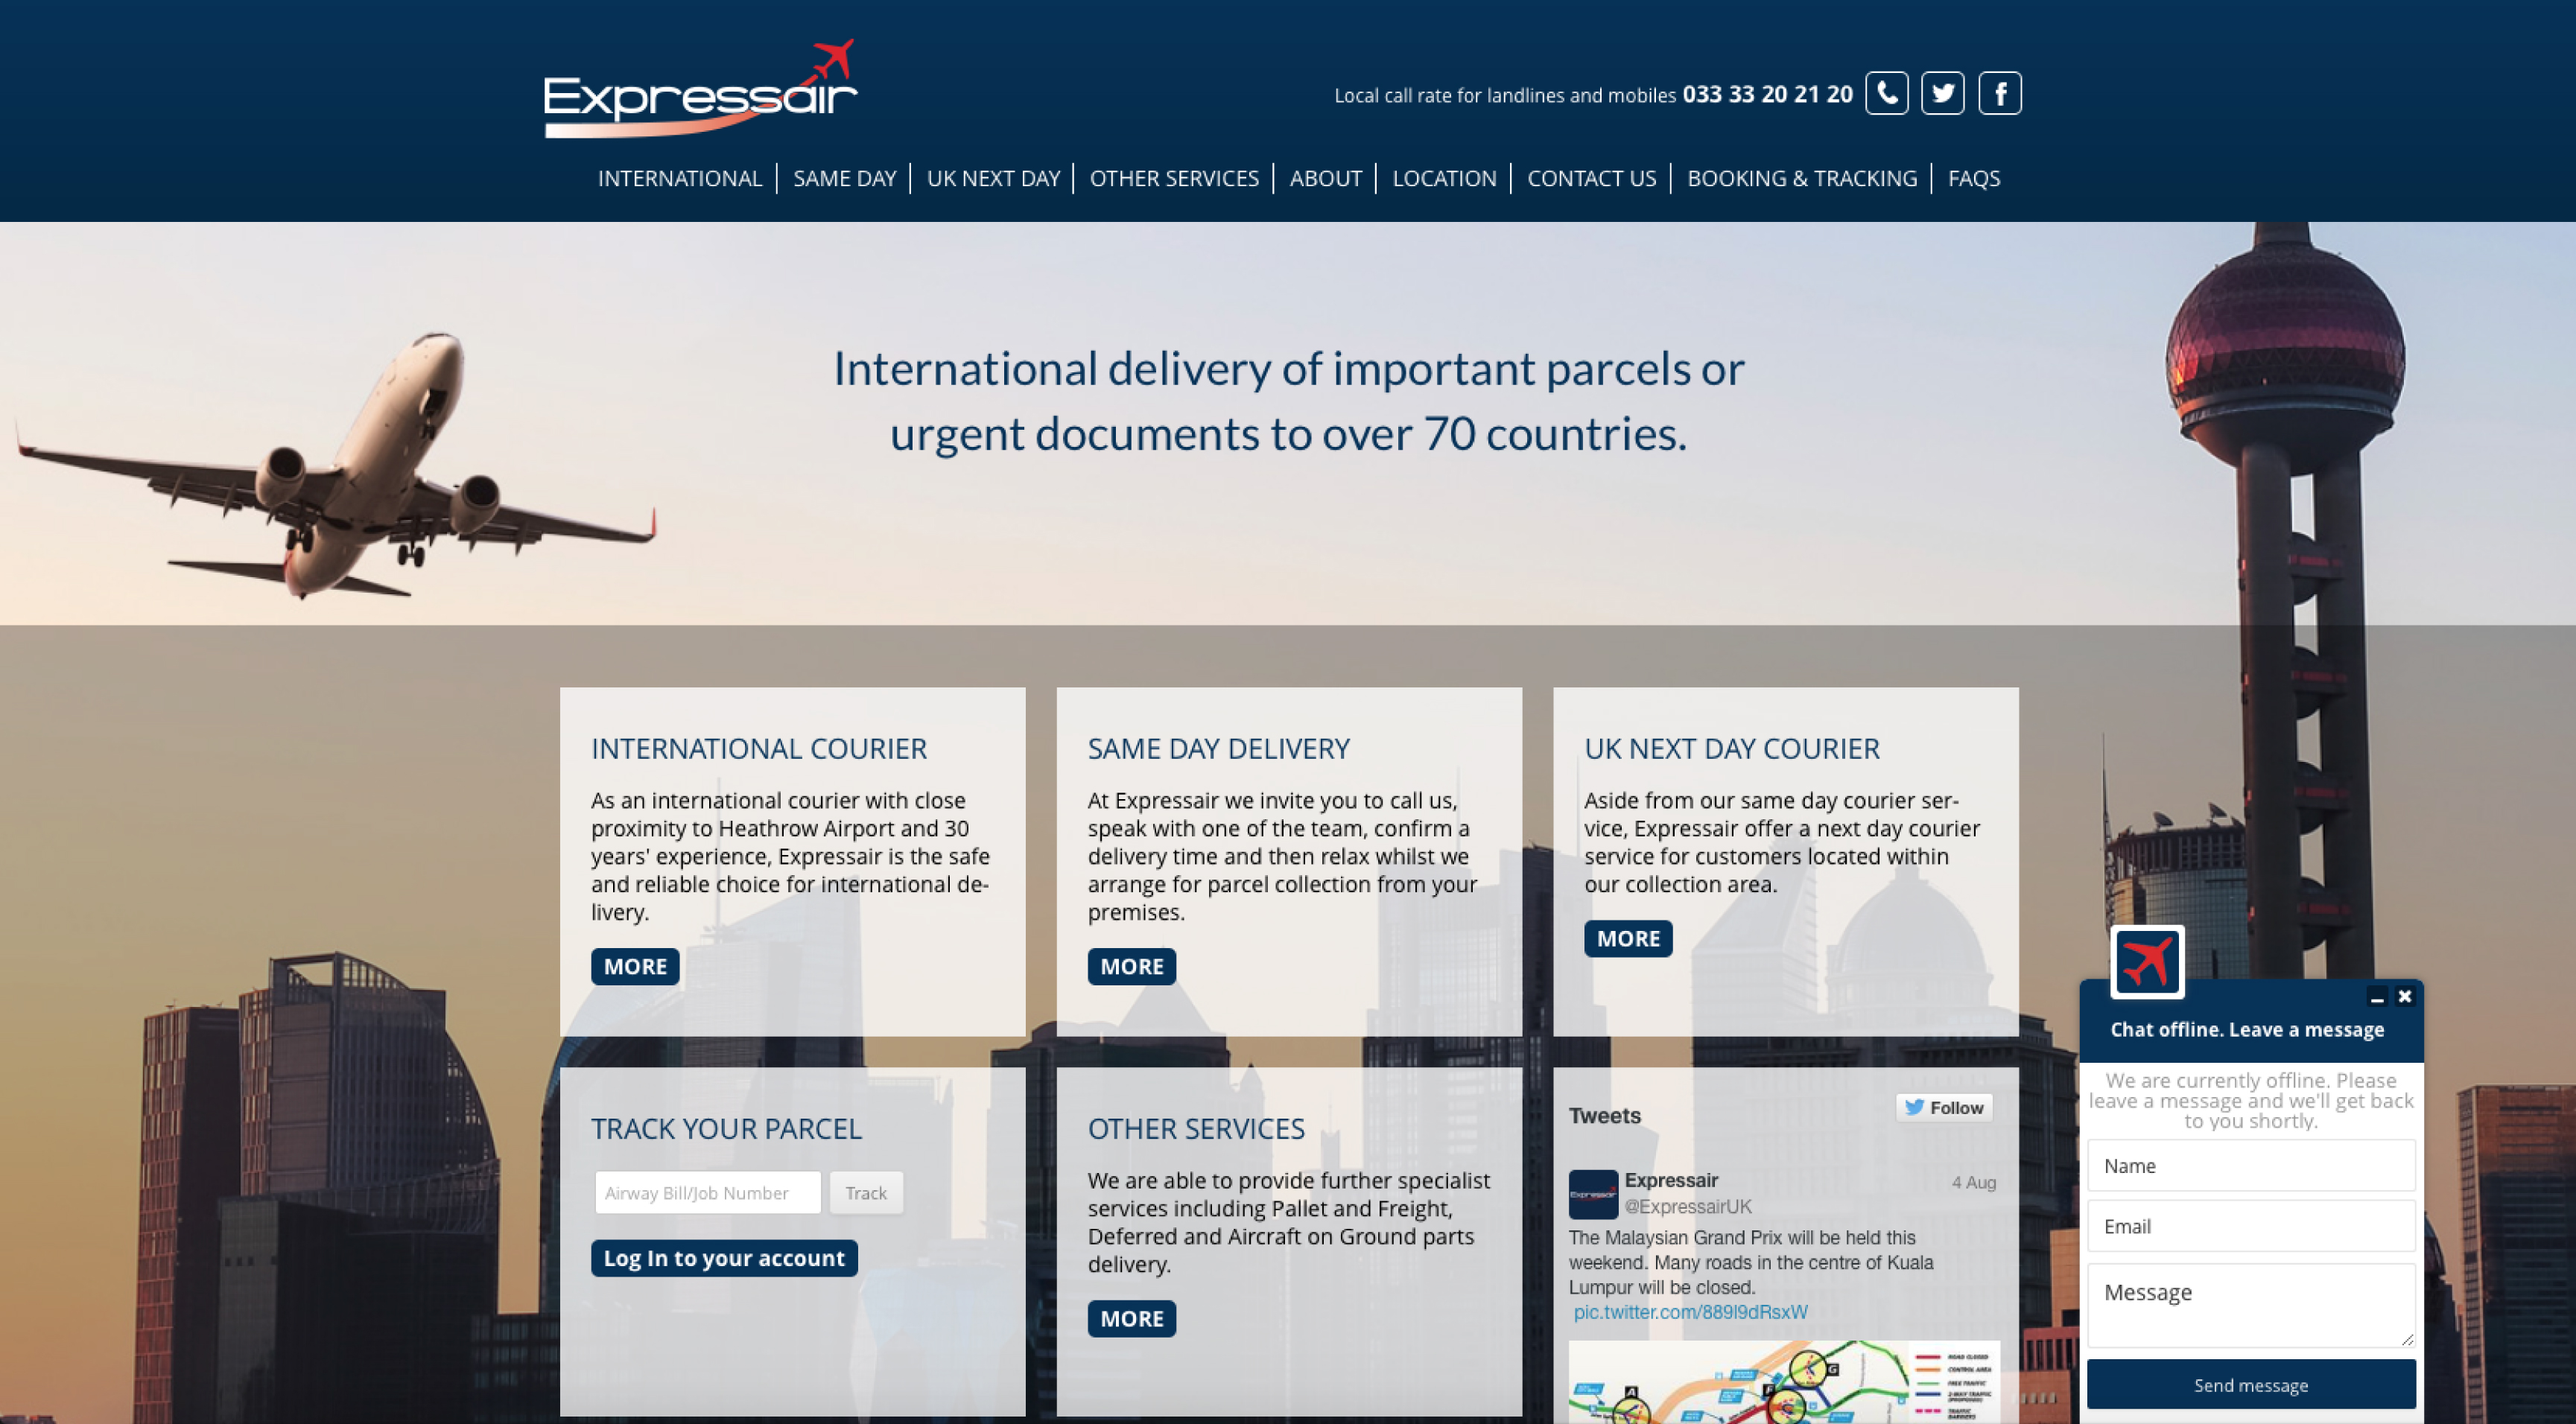 expressair homepage layout